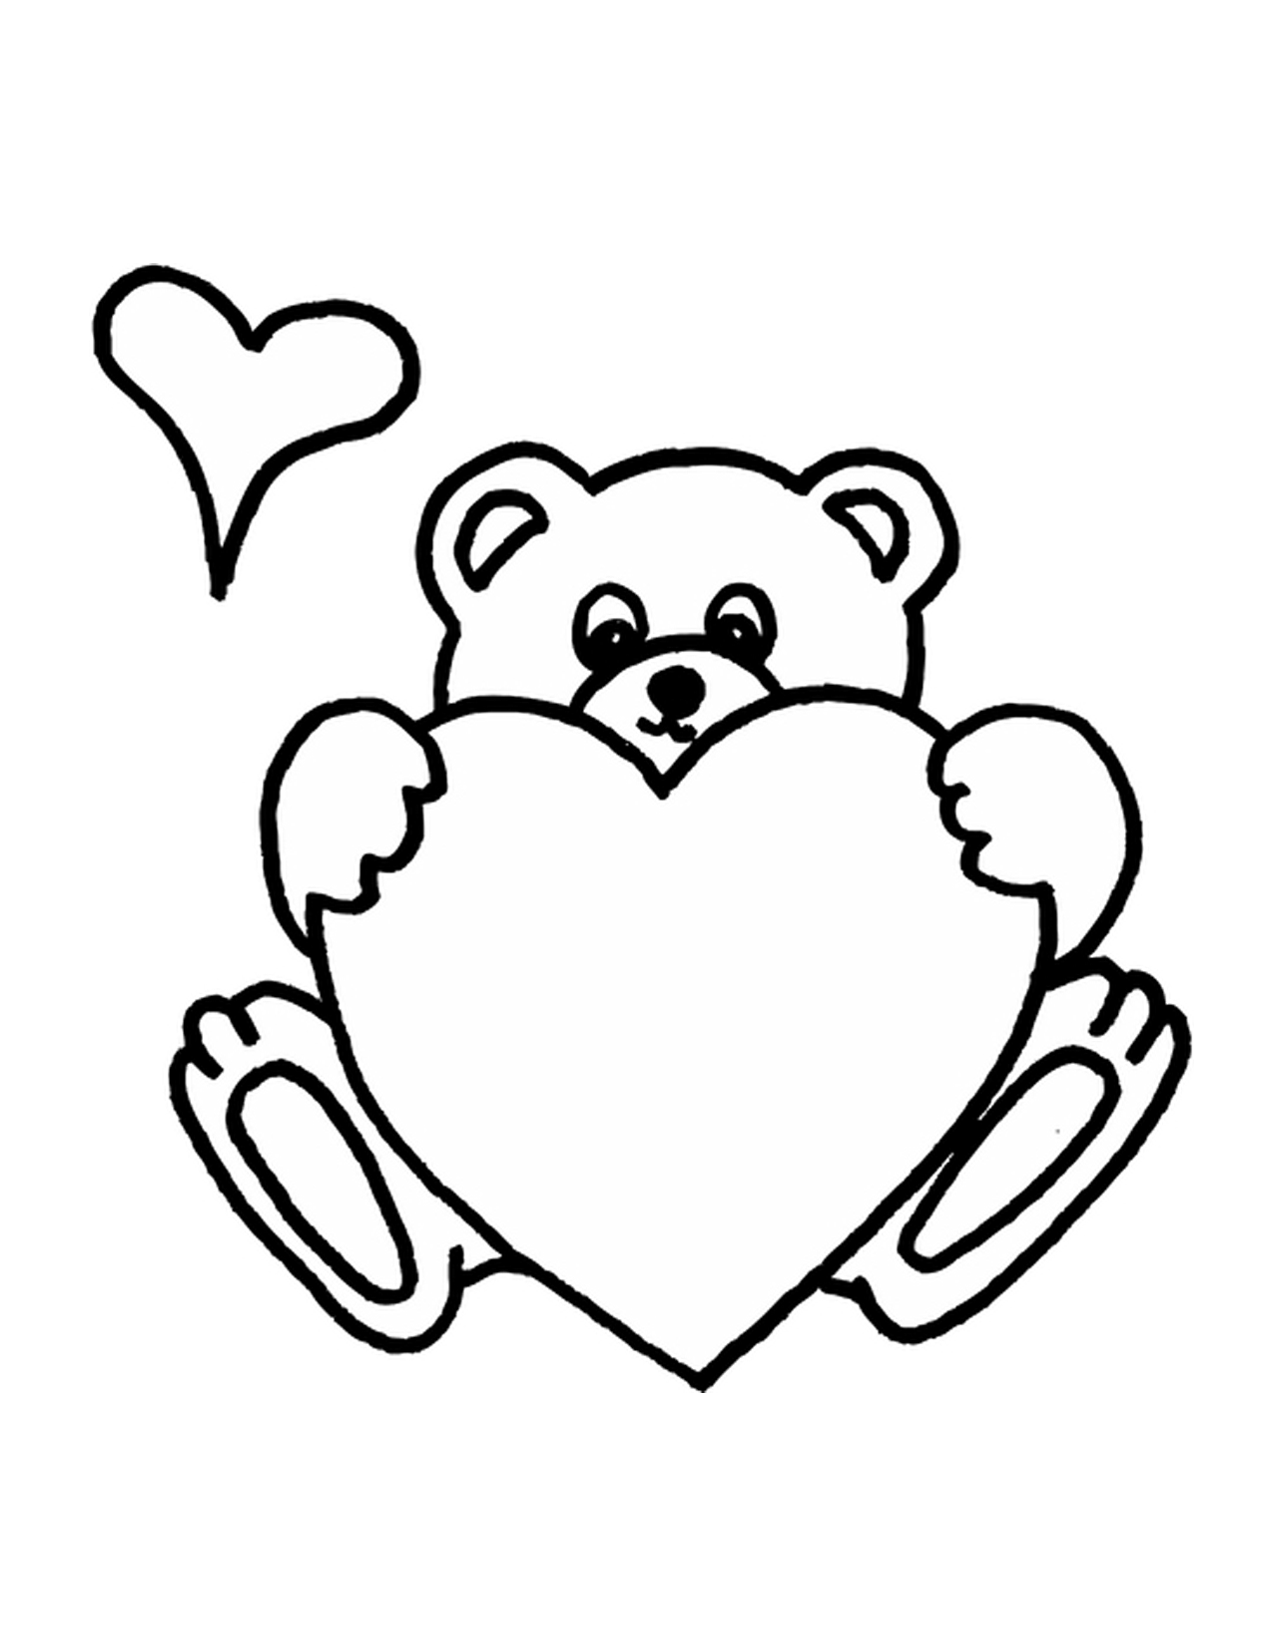 coloring pages teddy bear heart | Cute Teddy Bear Coloring Pages | coloring page teddy bear ...